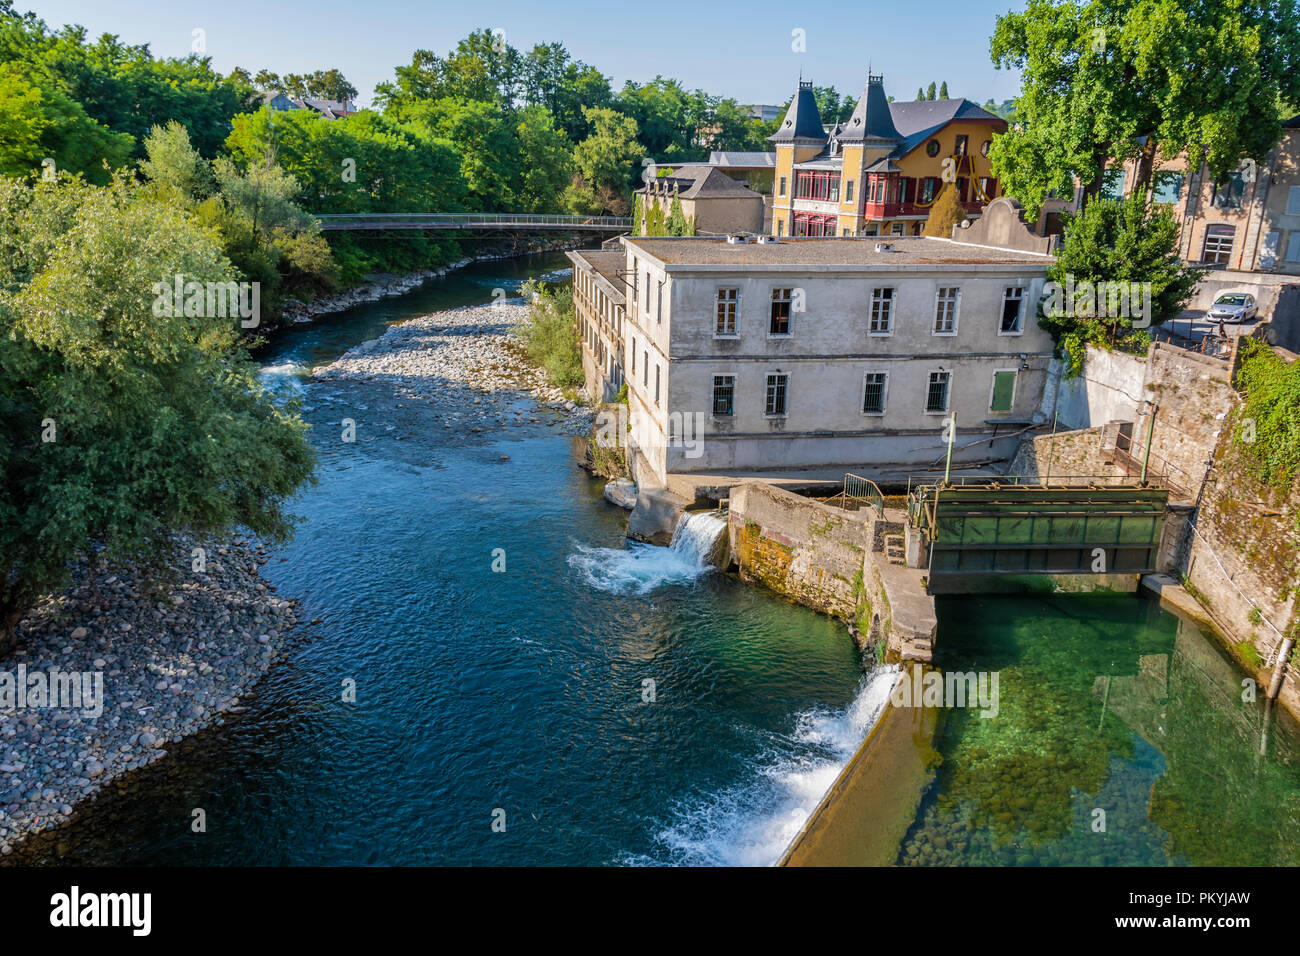 view of the dams on the river oloron from the Saint Claire bridge. Saint Marie Oloron france - Stock Image